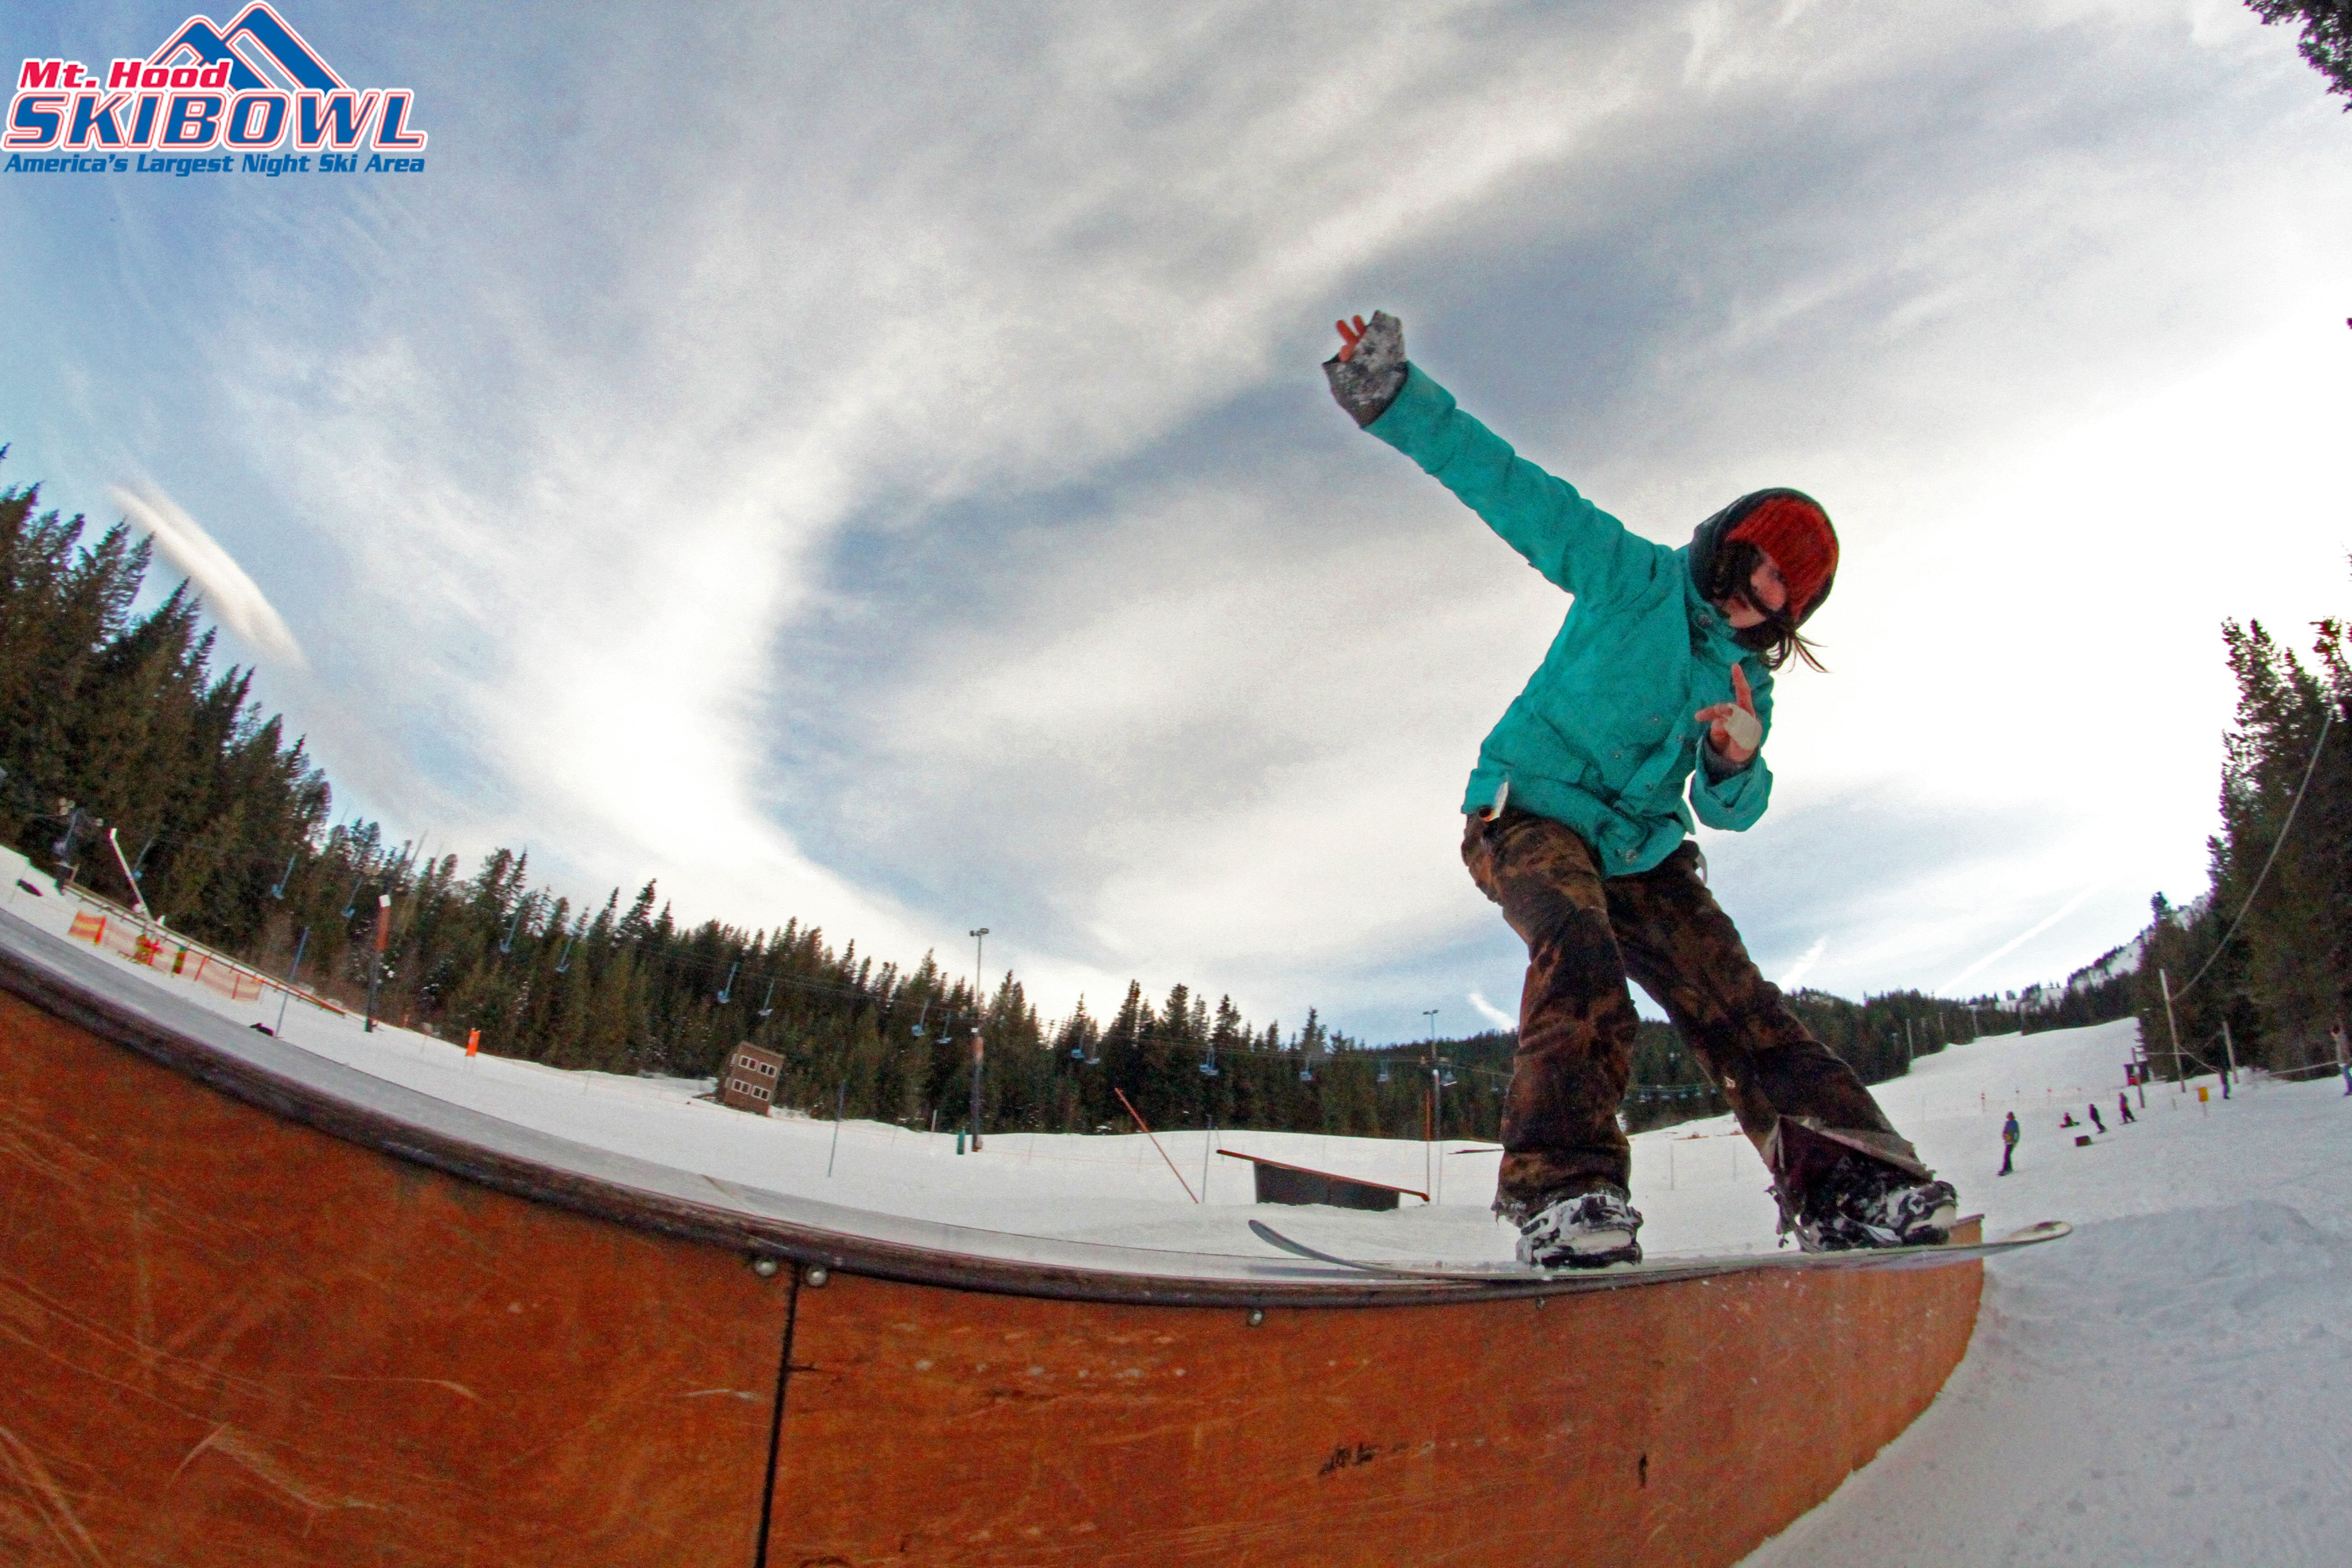 The 4 F Rail Jam Series Held At Skibowl Offers All Types Of Rails Jibs And Creative Features For Beginners And Elite Skiers And Rider Skiing Good Times Skier